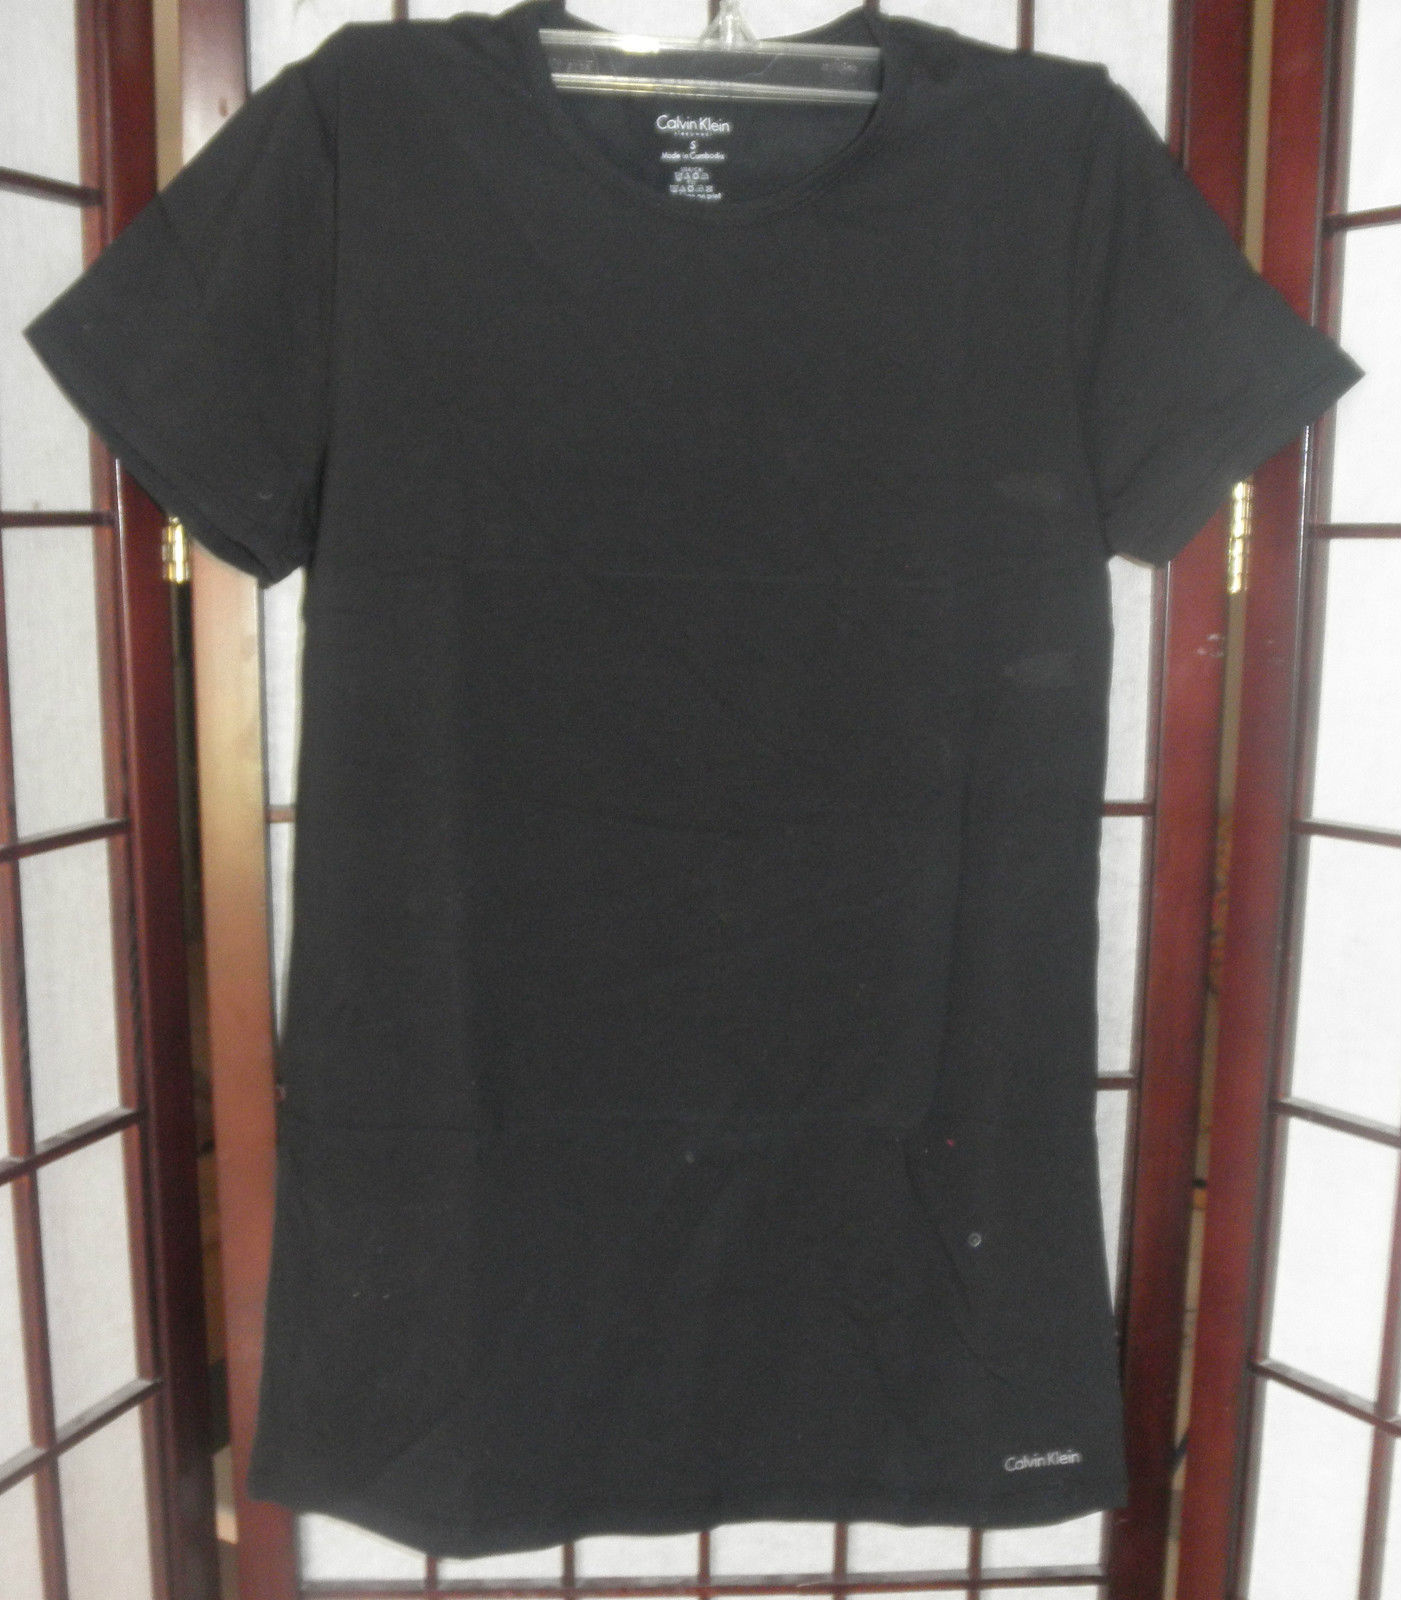 Primary image for 2 womens top t shirt calvin klein size small pink and black new with tags